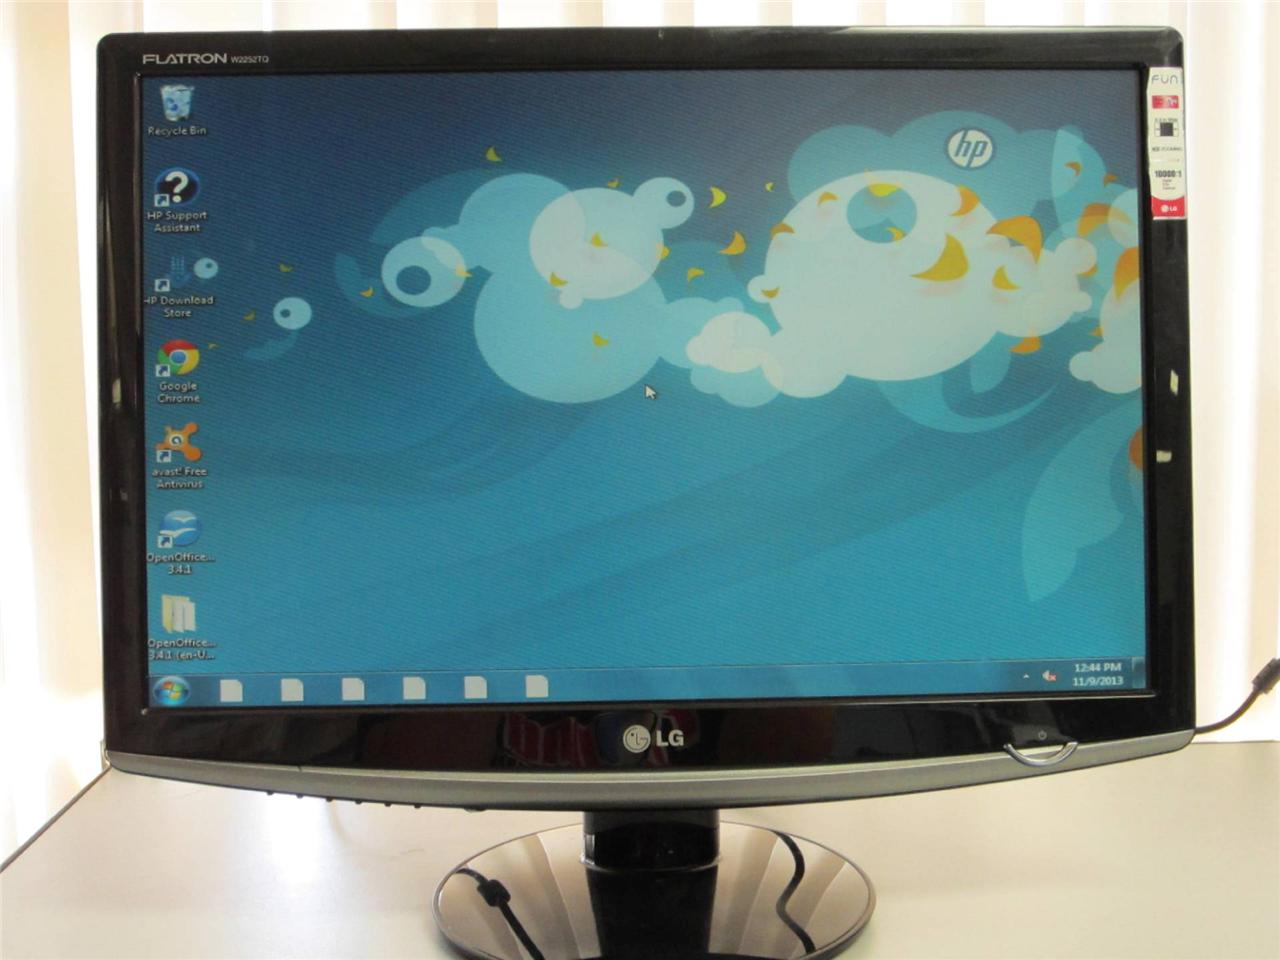 Download Driver For Lg 27mp33hq Monitor Win 10